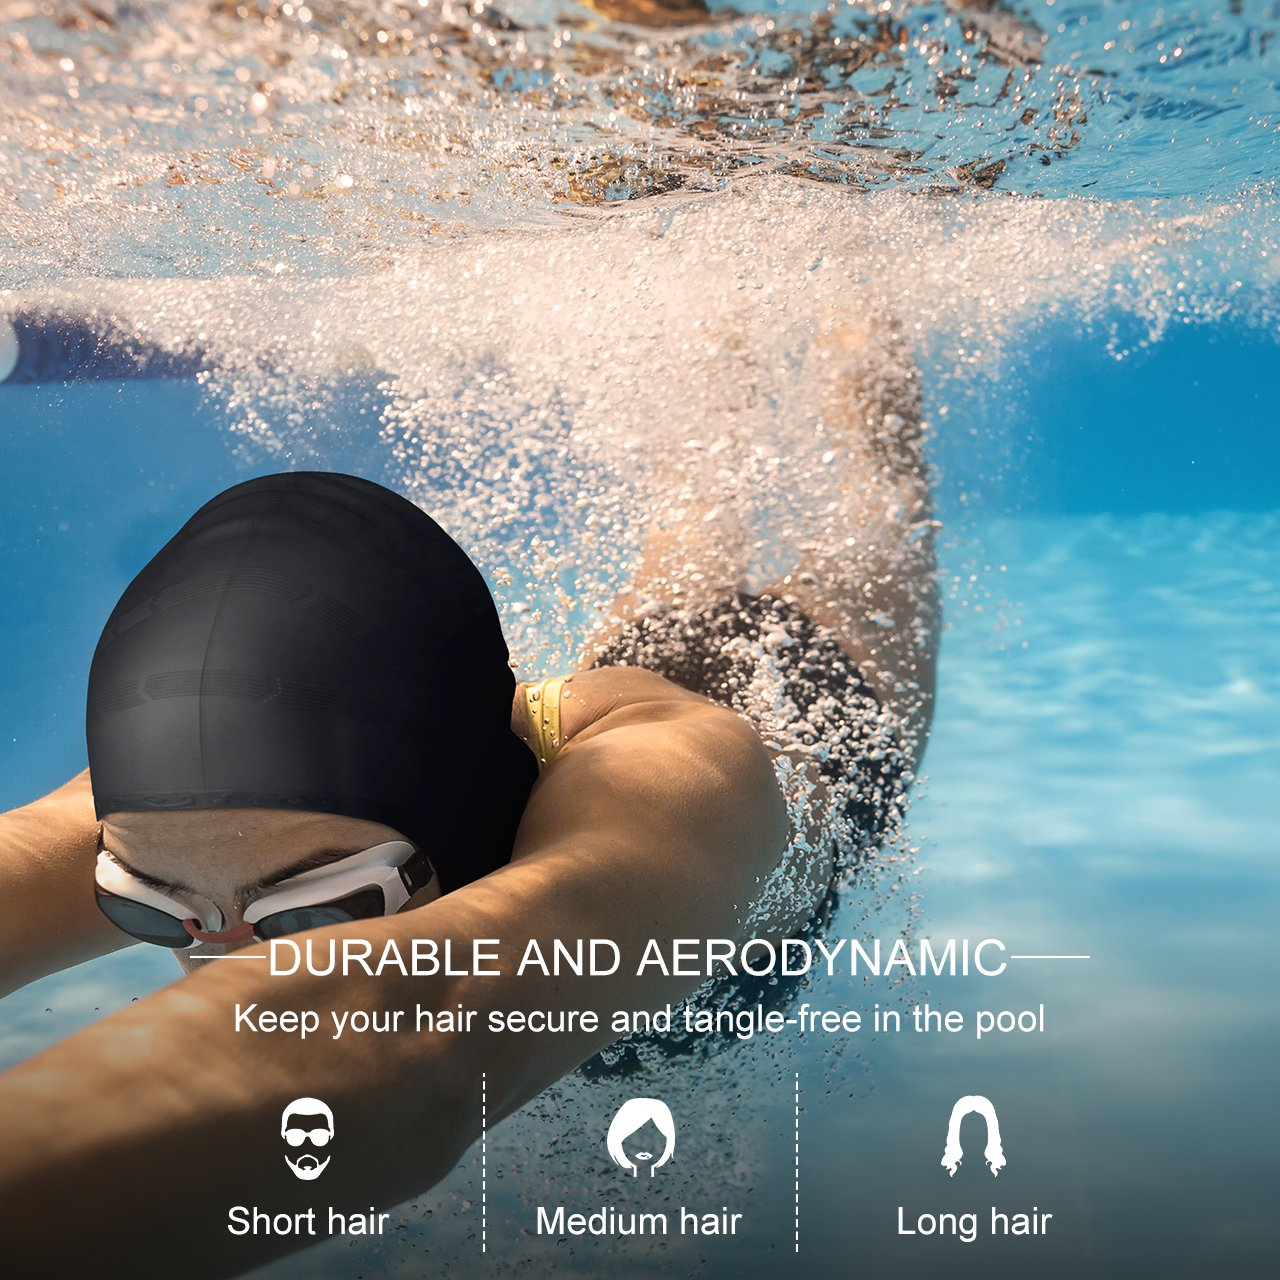 58d64d64835 OMORC Silicone Swimming Cap, [2019 New Version] Anti-Tear Ergonomic Pockets  to Cover Ears, Long Hair, Thick or Short-Average/Large Heads for Woman, Man,  ...